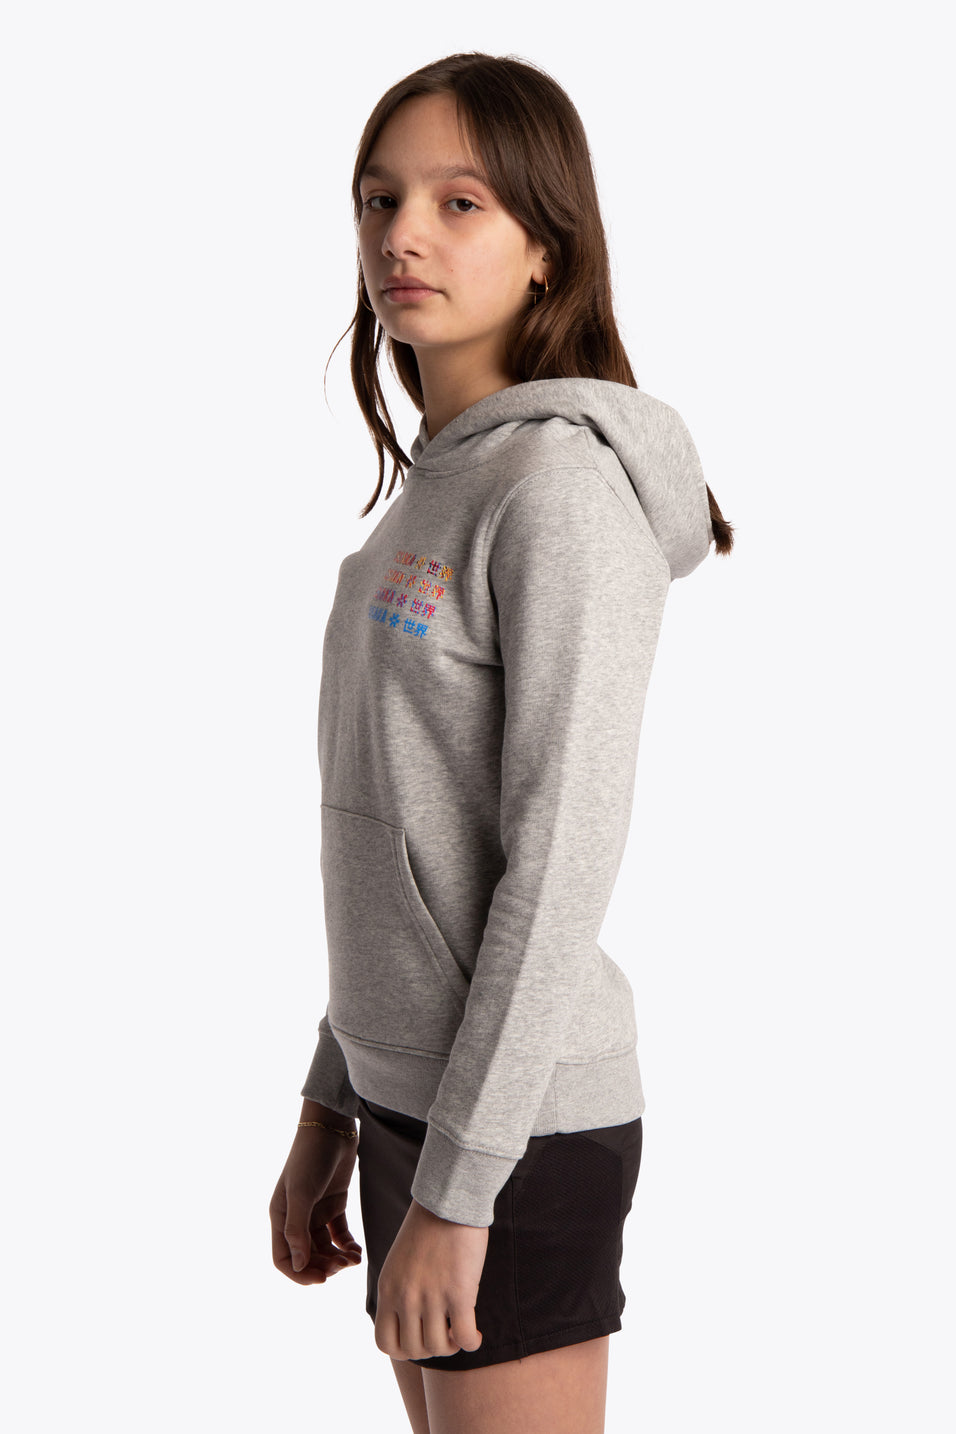 Deshi Hoodie Pollocs Repeat - Heather Grey